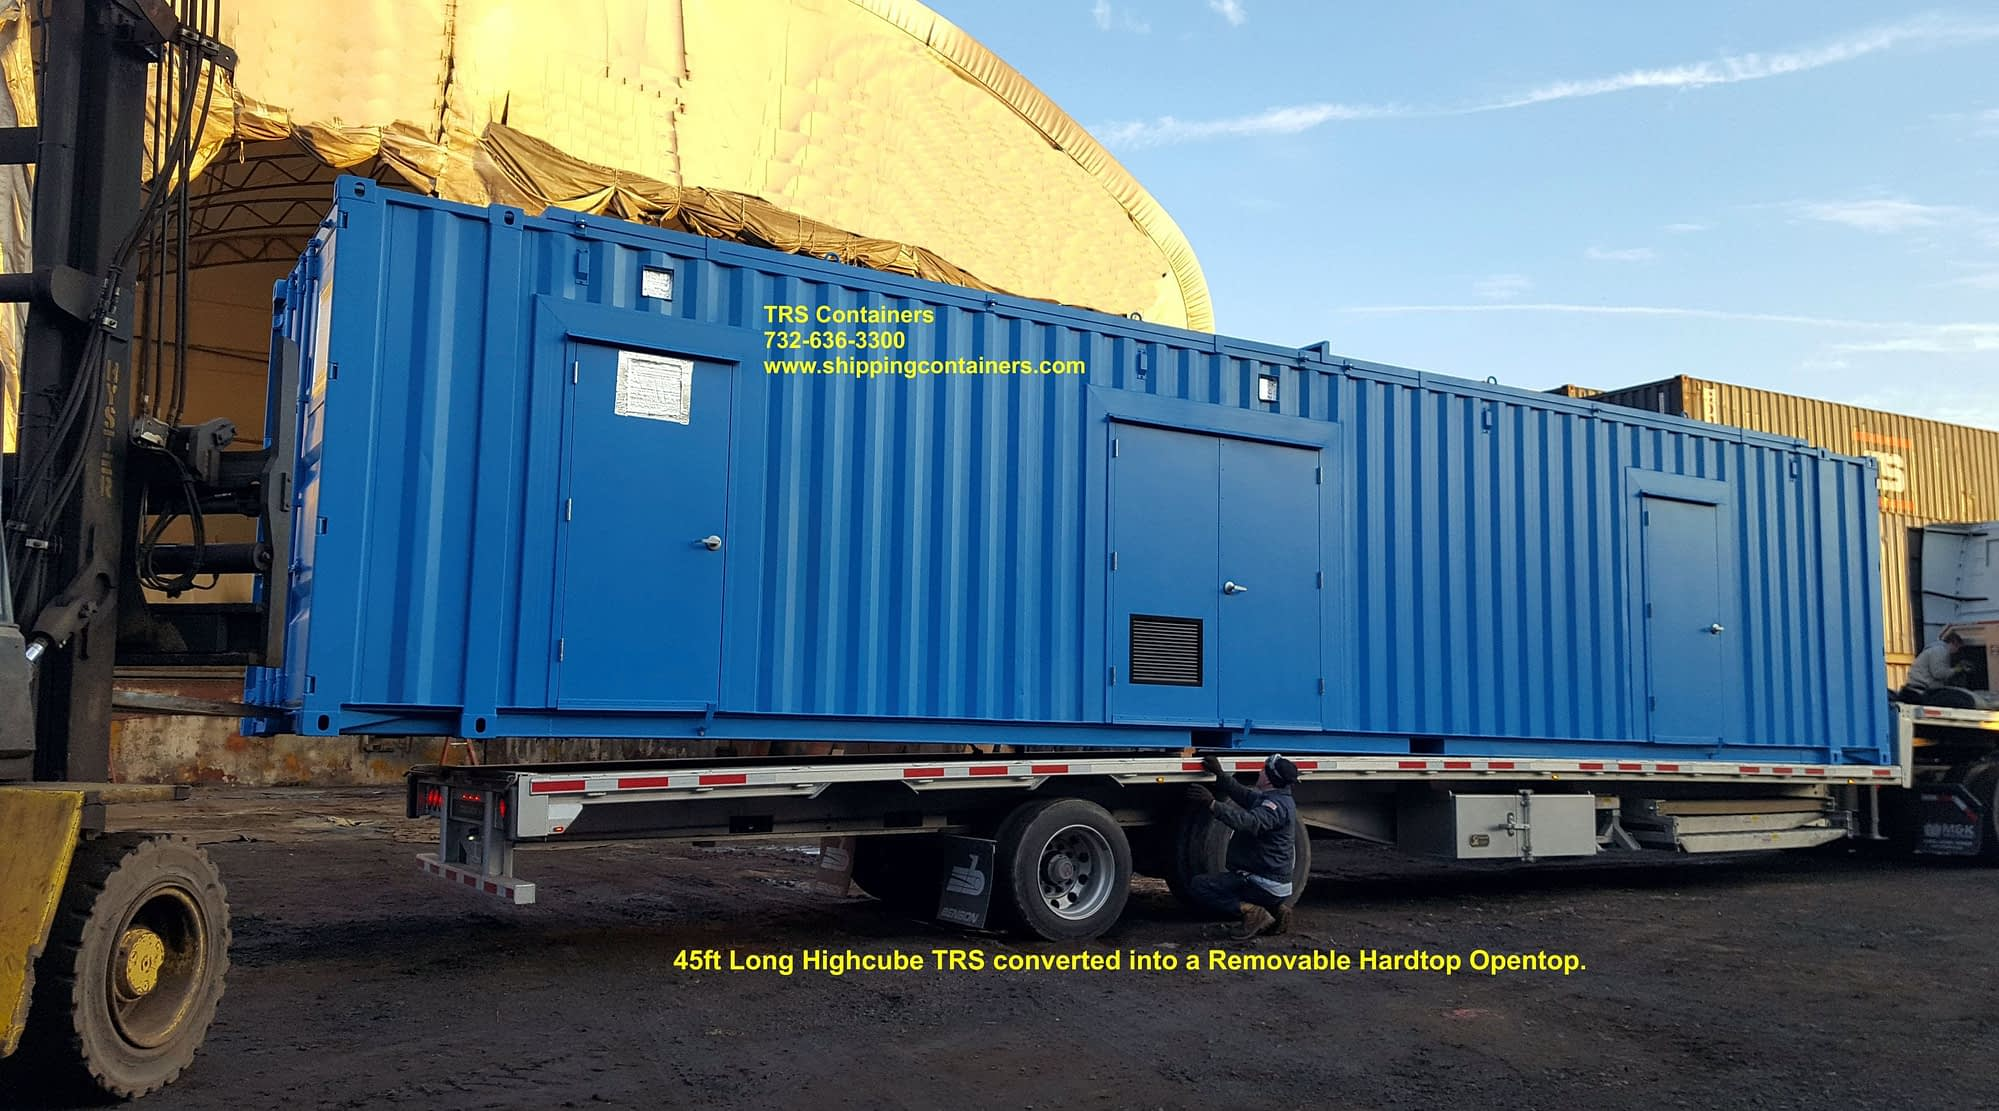 BioGas System housed in a 45ft Long Modified TRS Container